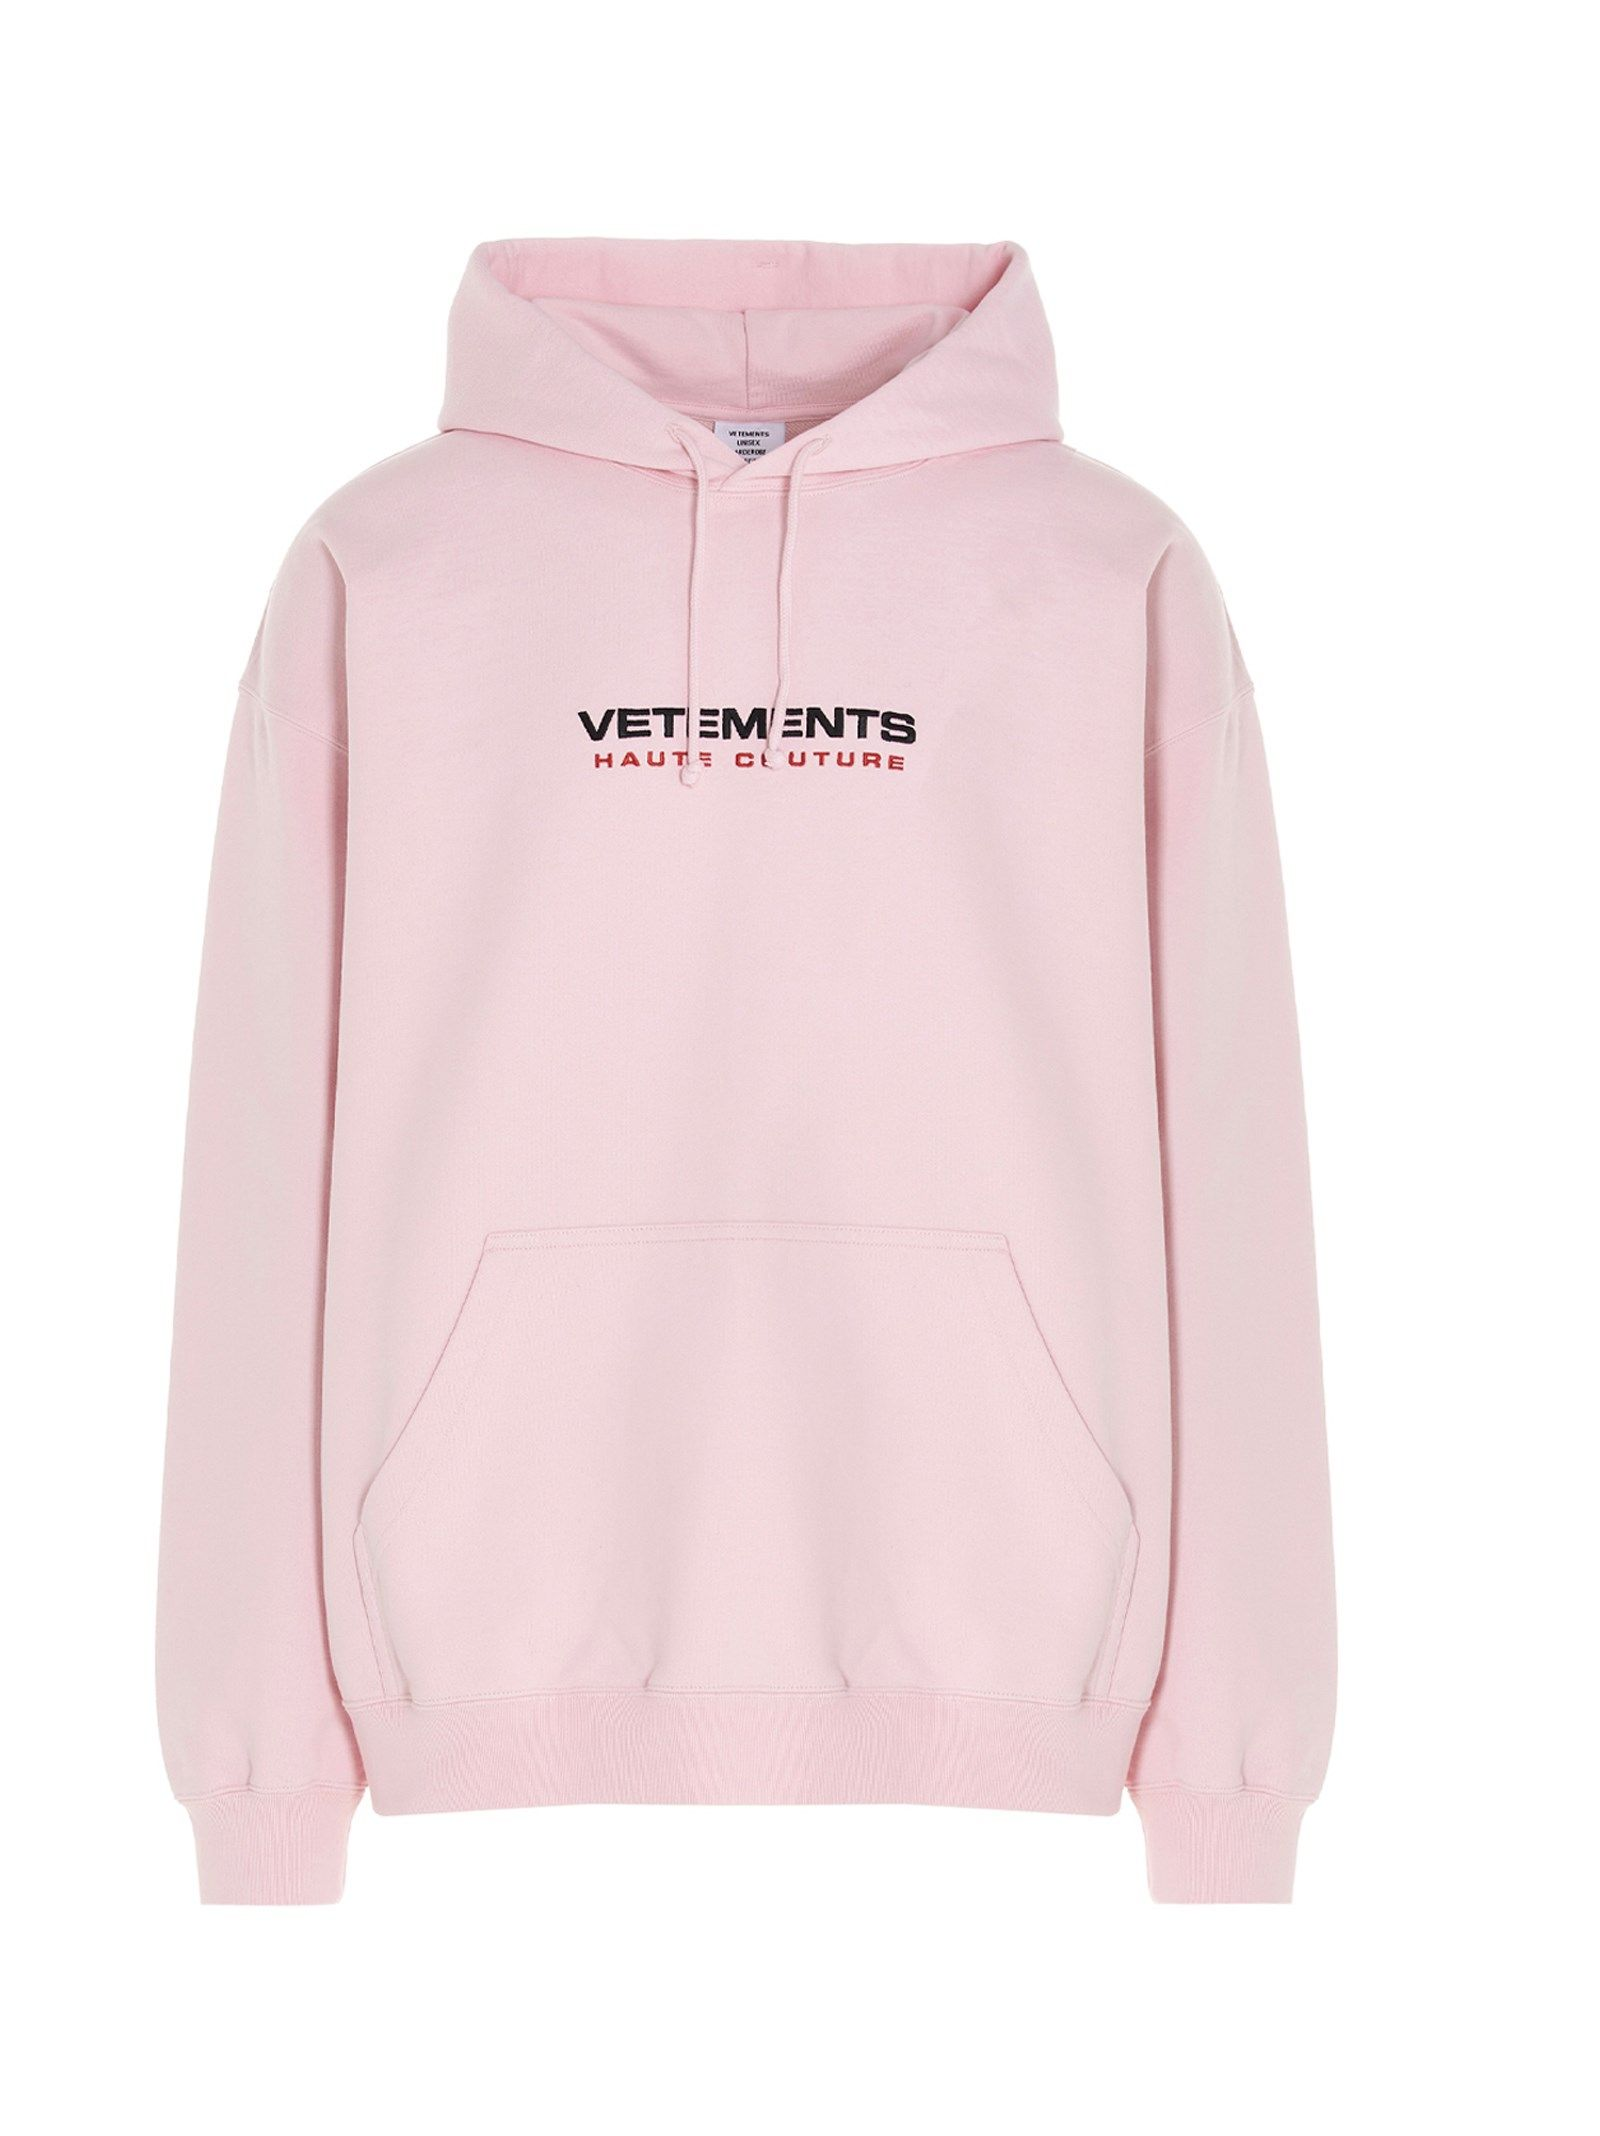 Vetements VETEMENTS MEN'S PINK COTTON SWEATSHIRT